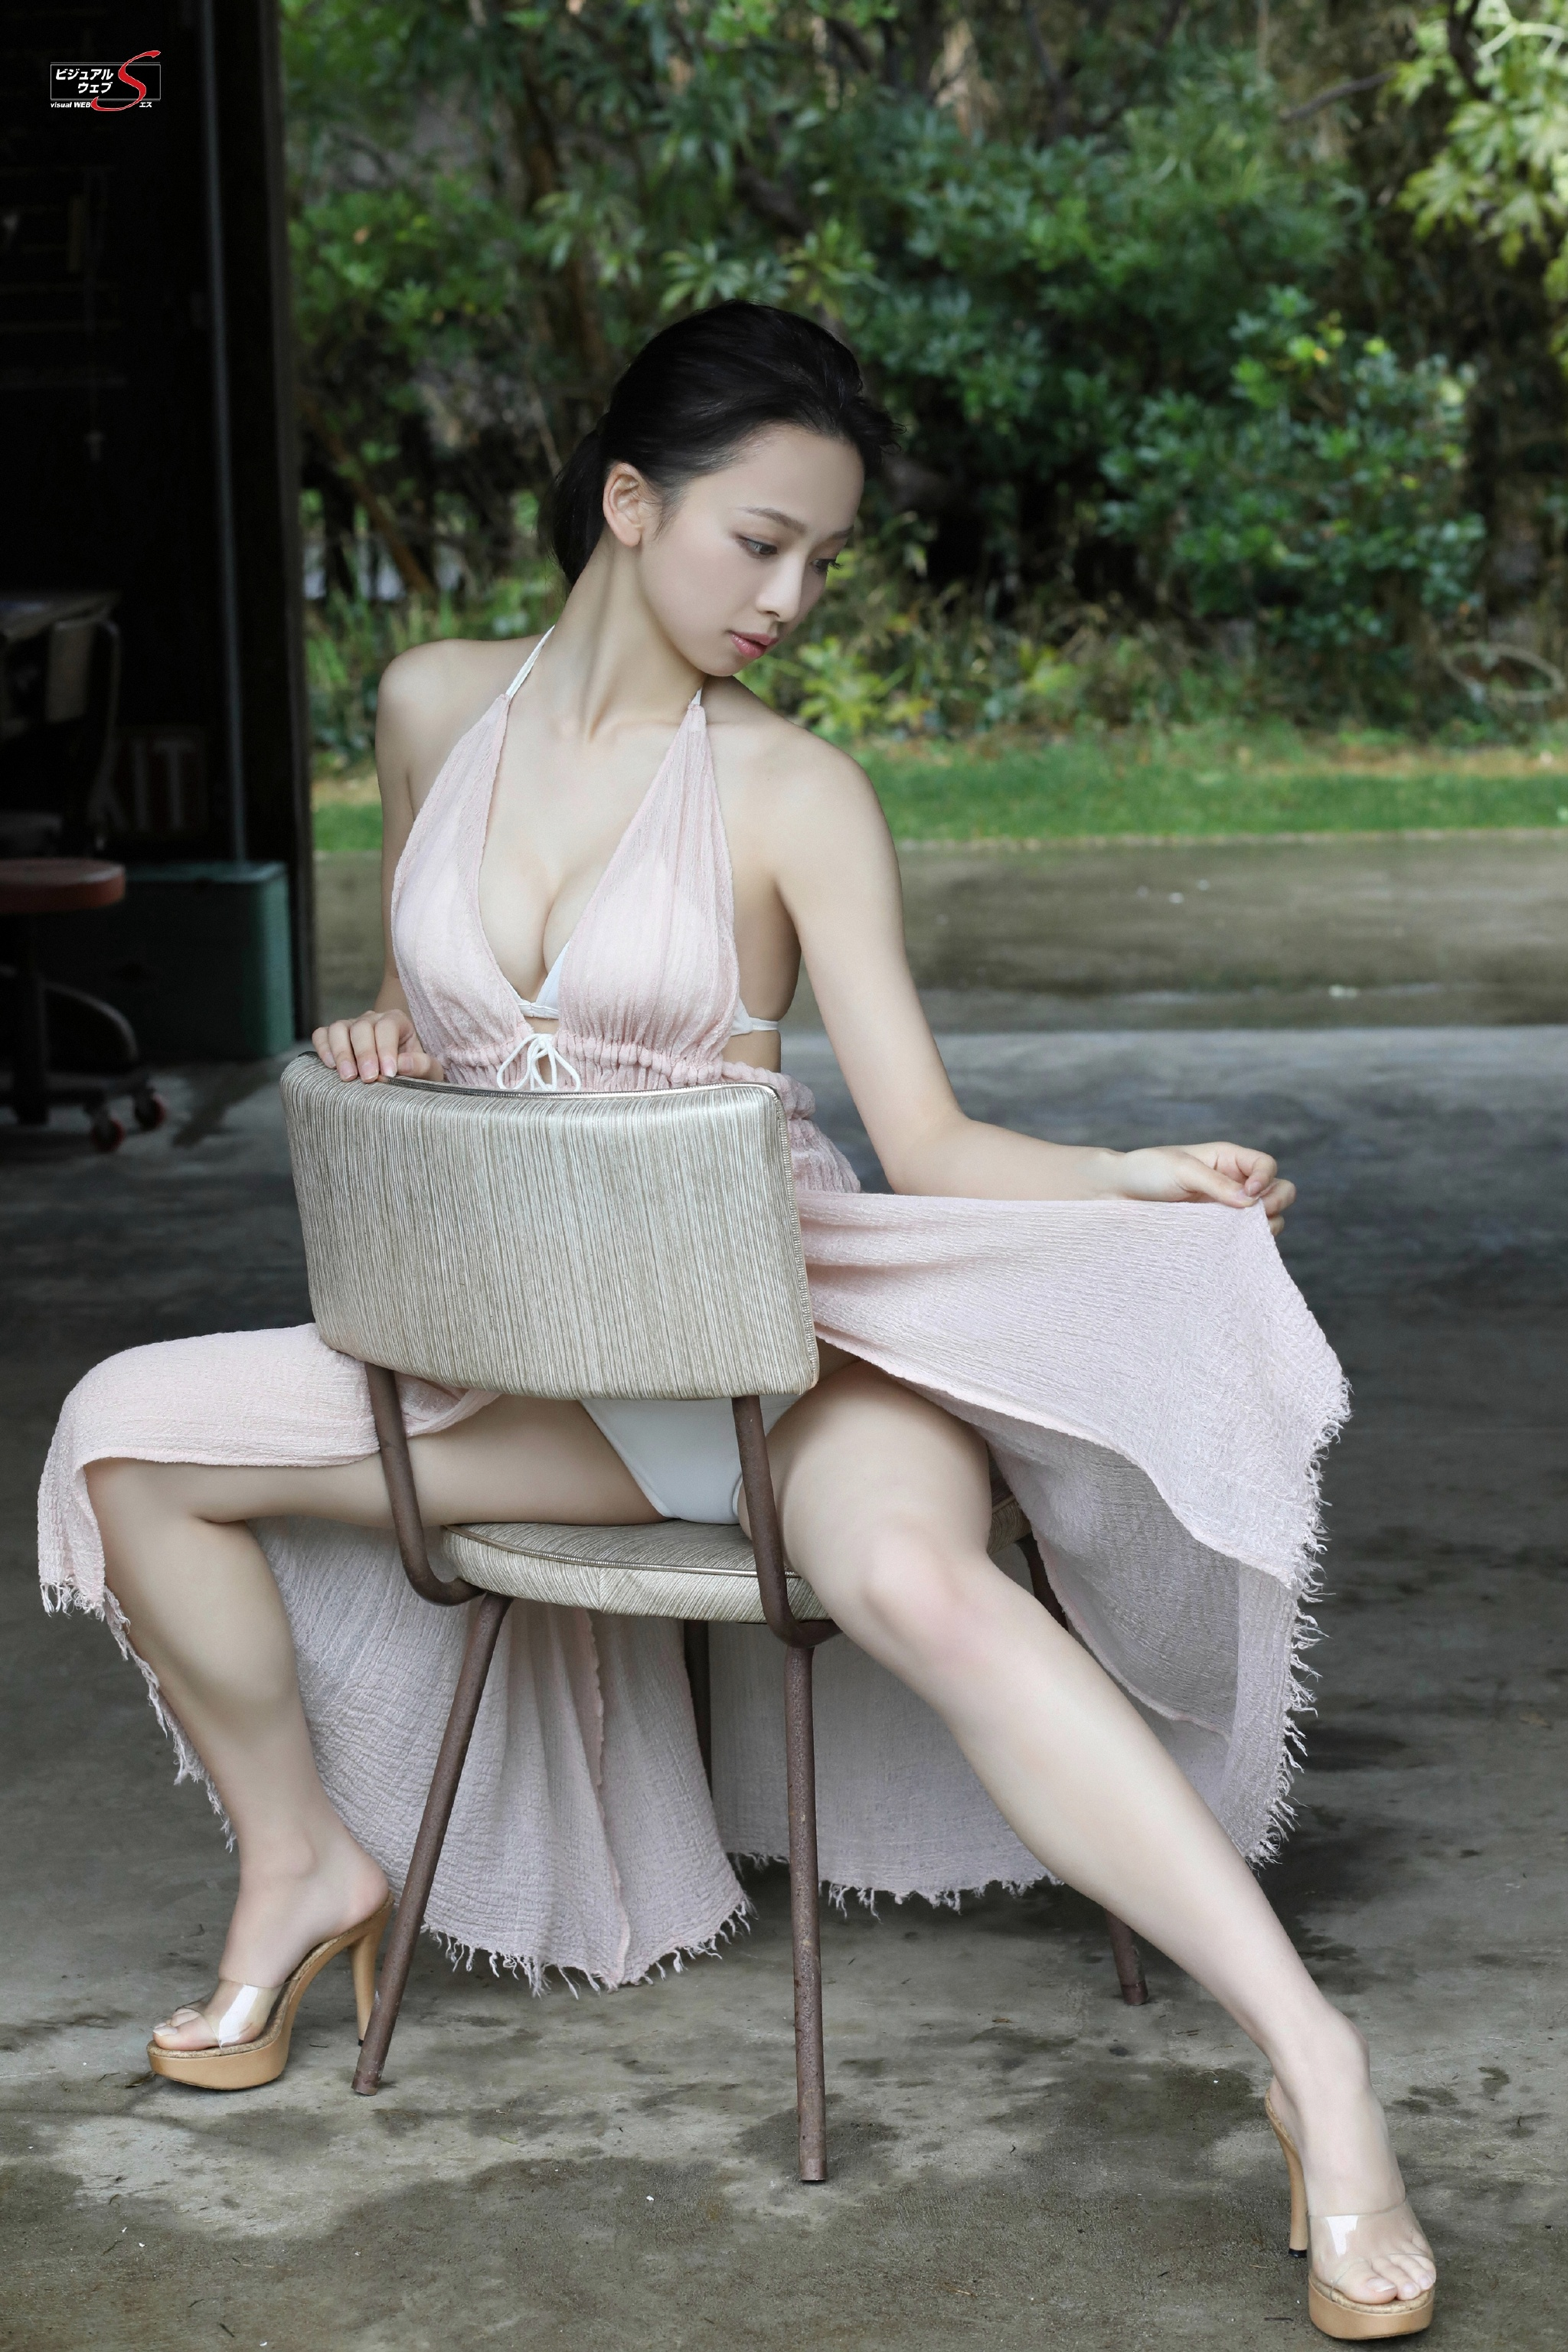 cool Asian in sexy pose